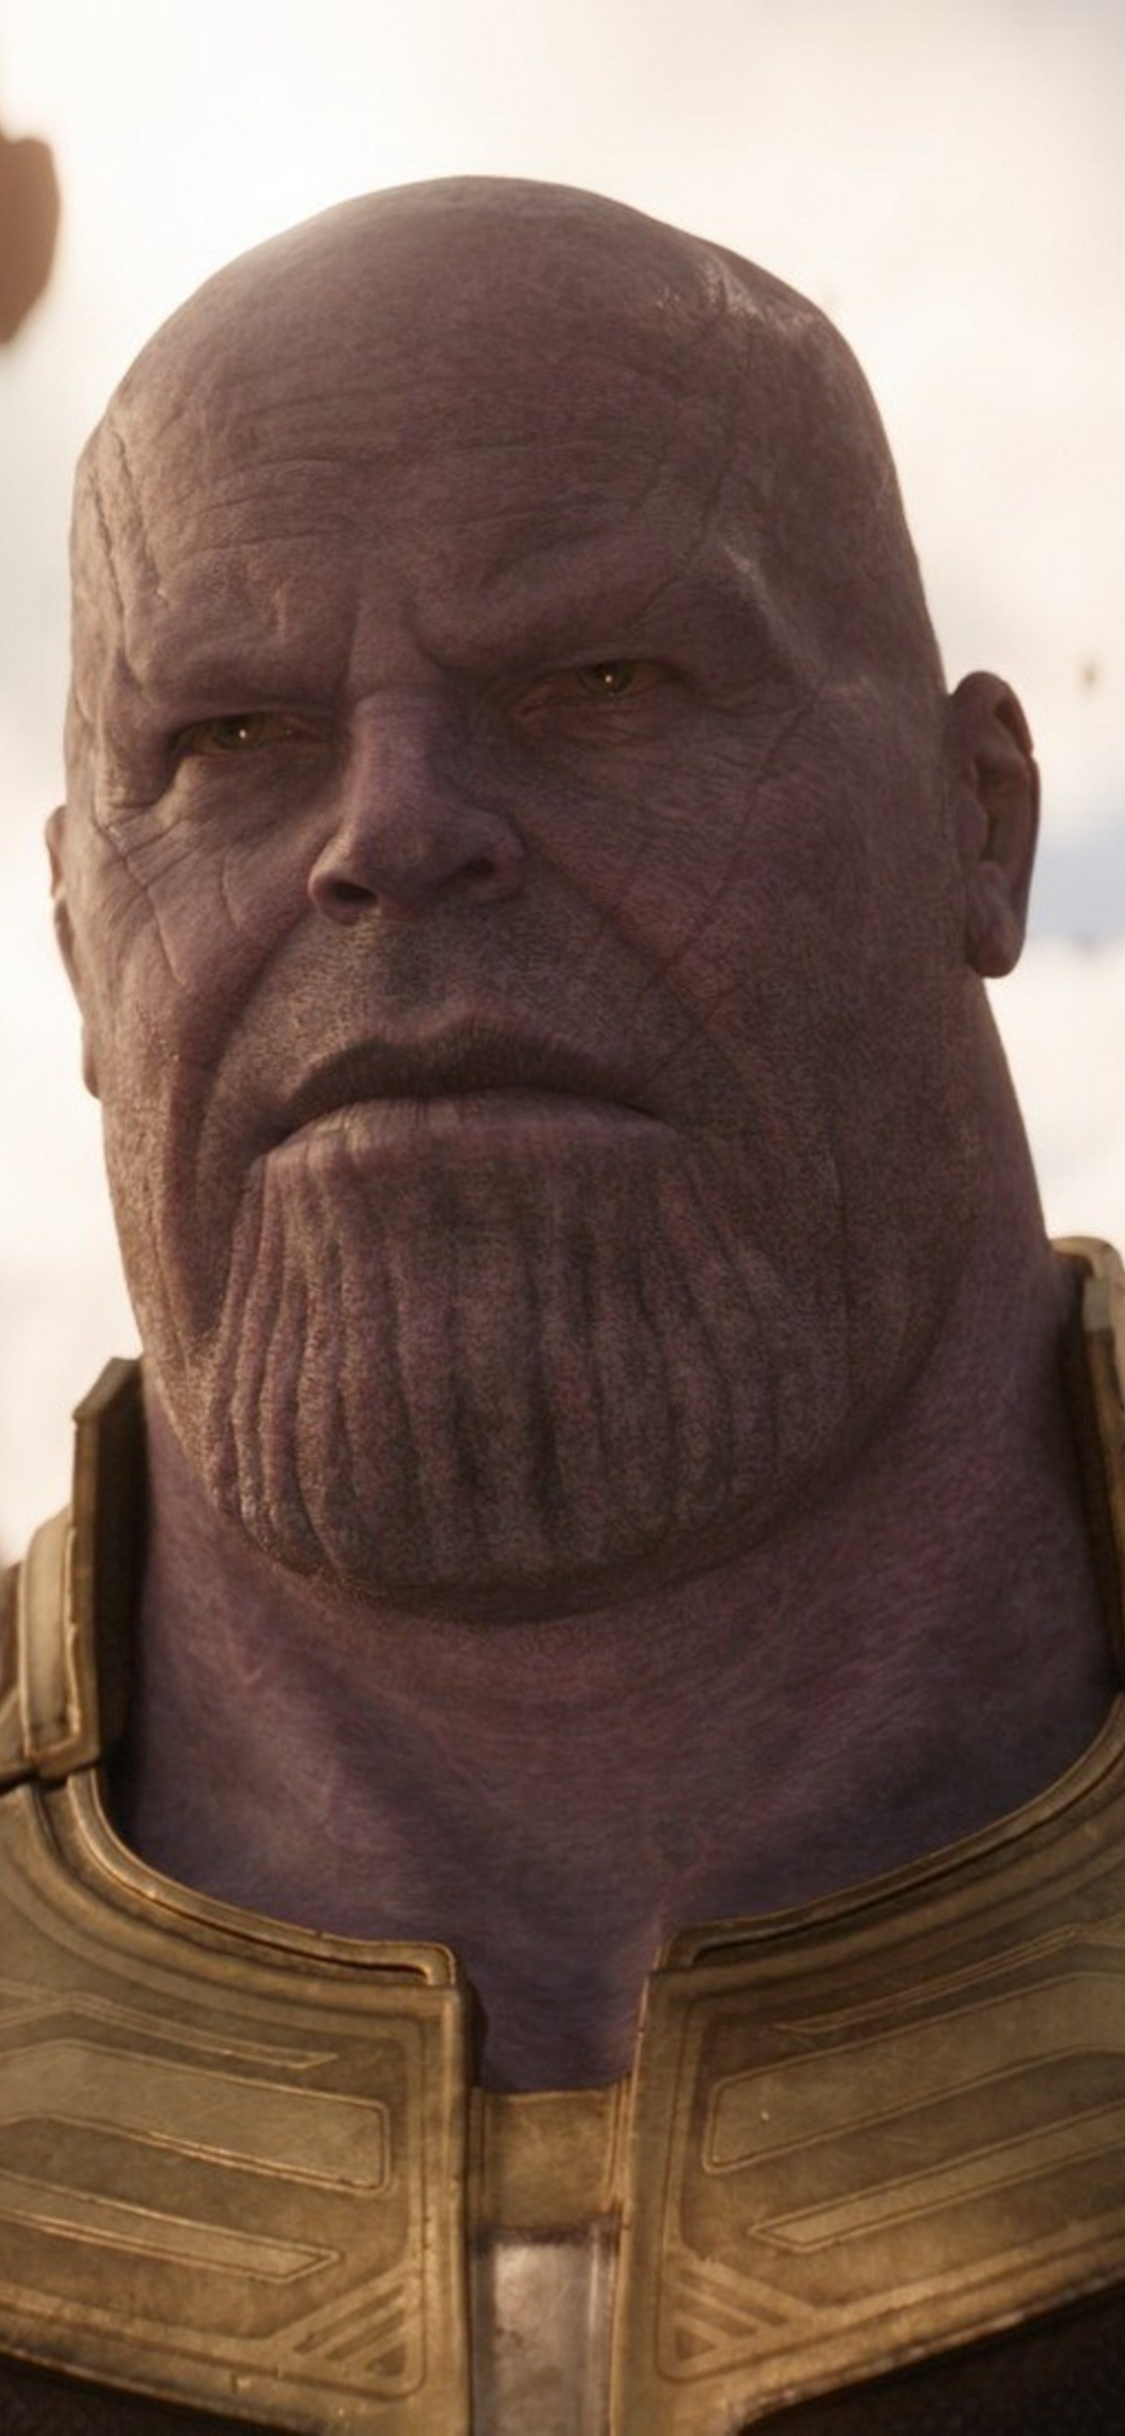 movies on iphone 1125x2436 josh brolin as thanos in infinity war 2314